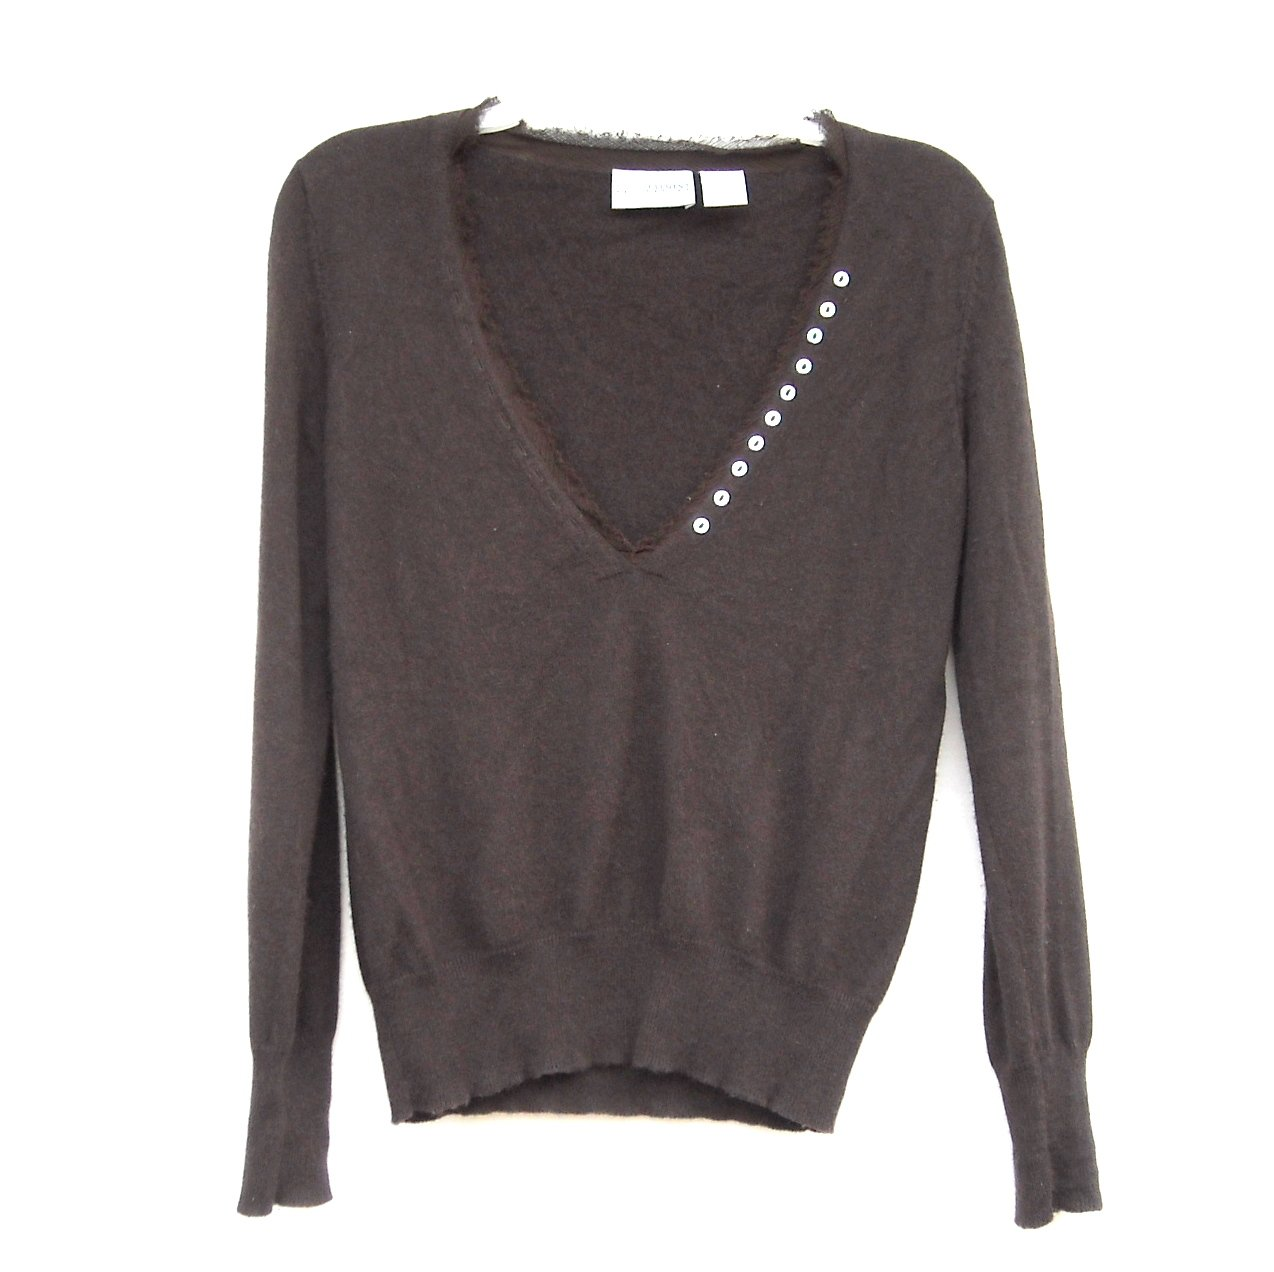 Laura Clement Misses Dark Brown Sweater Size US 6 - 8